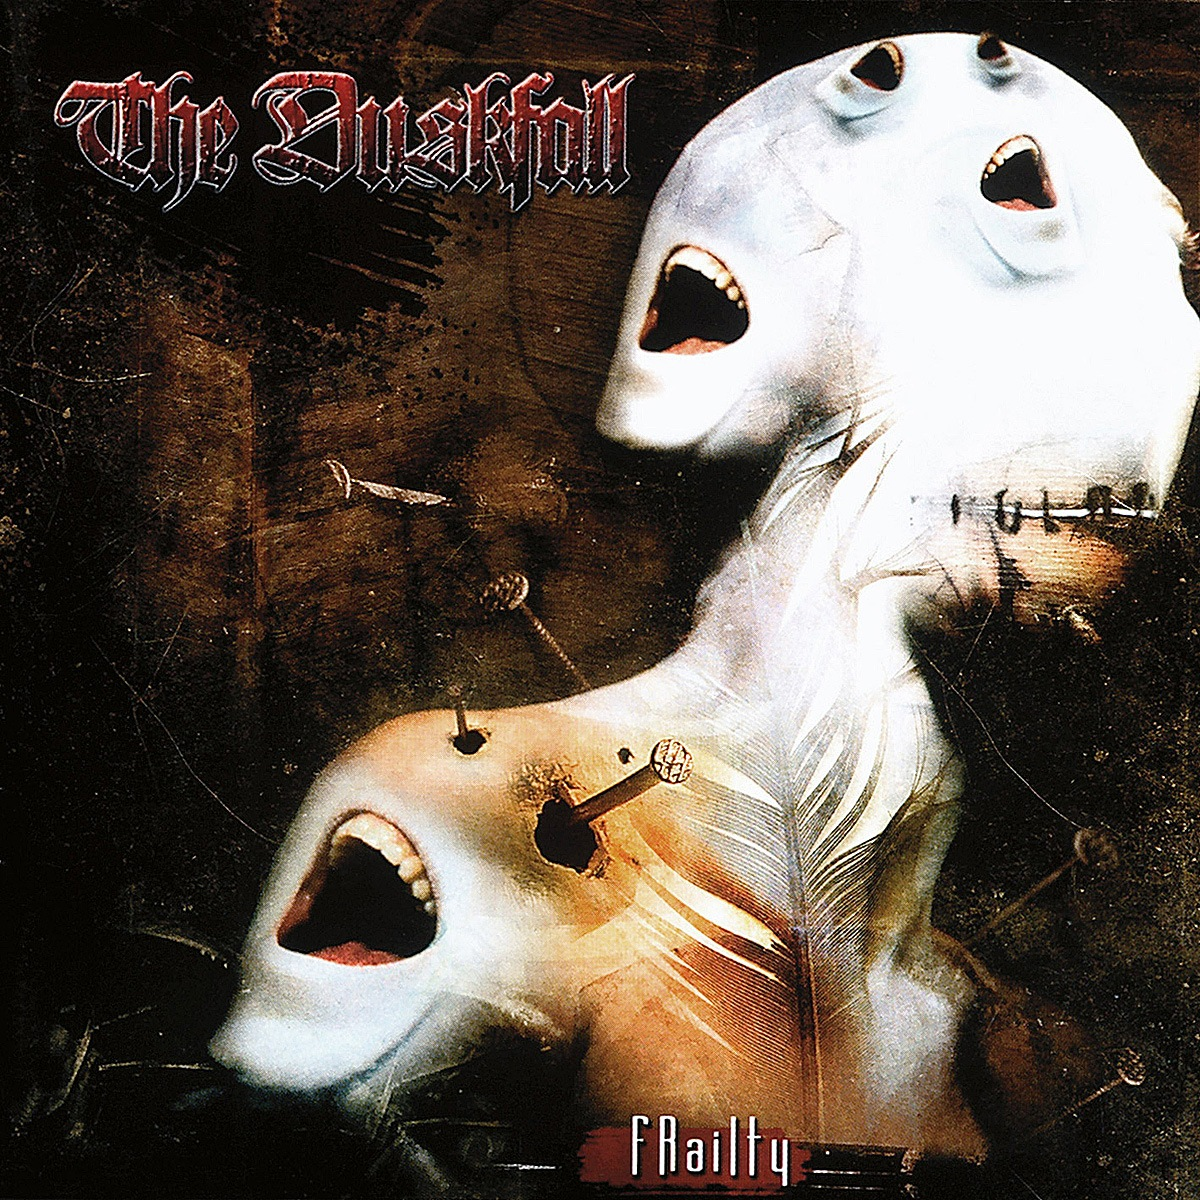 The Duskfall: Frailty (2003) Book Cover